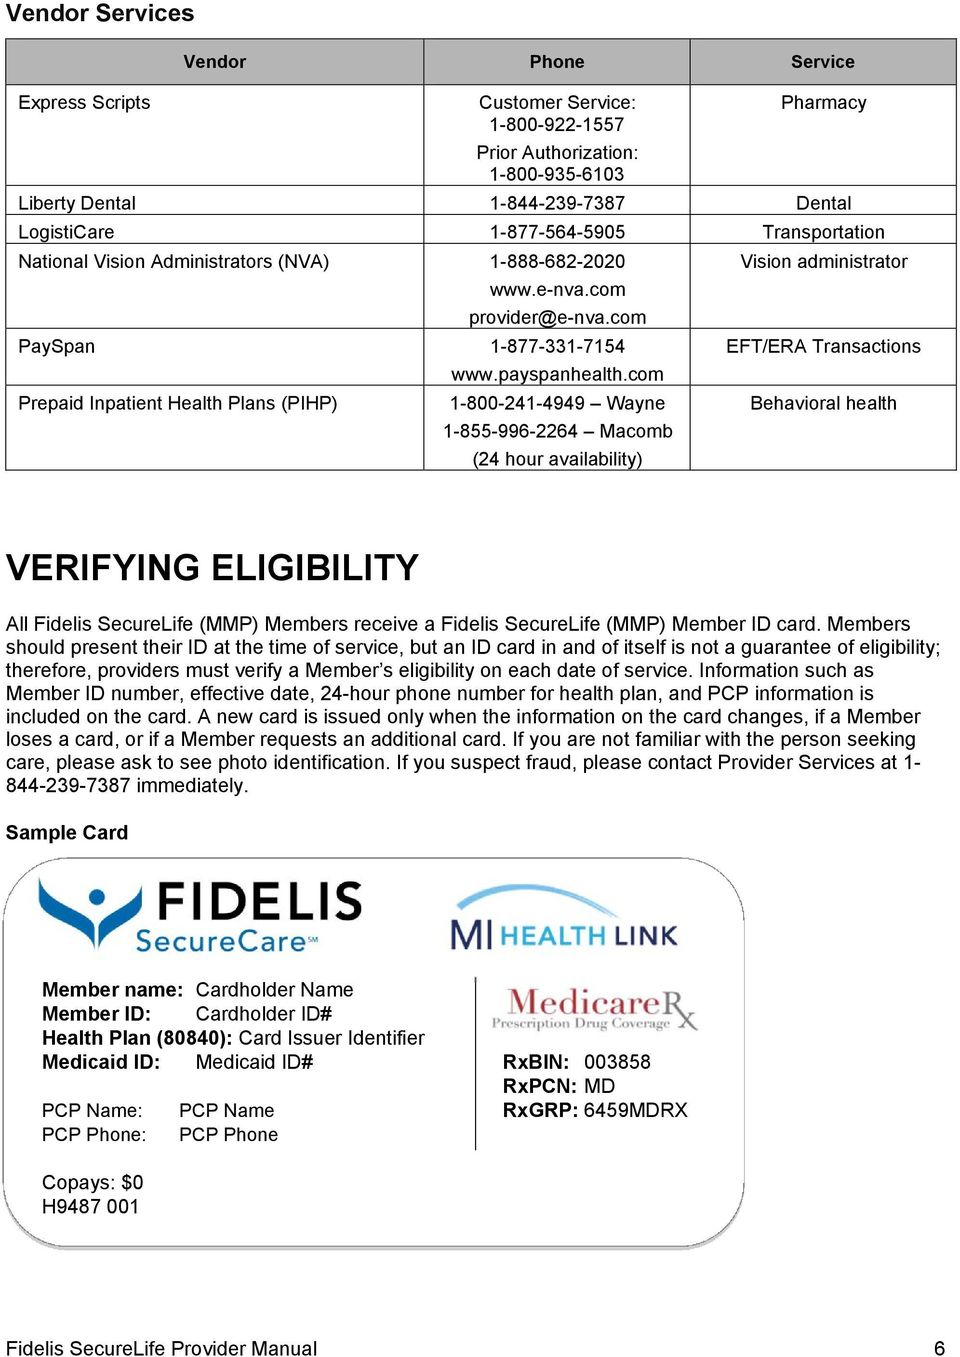 Fidelis Securelife Medicare Medicaid Plan Provider Manual Pdf